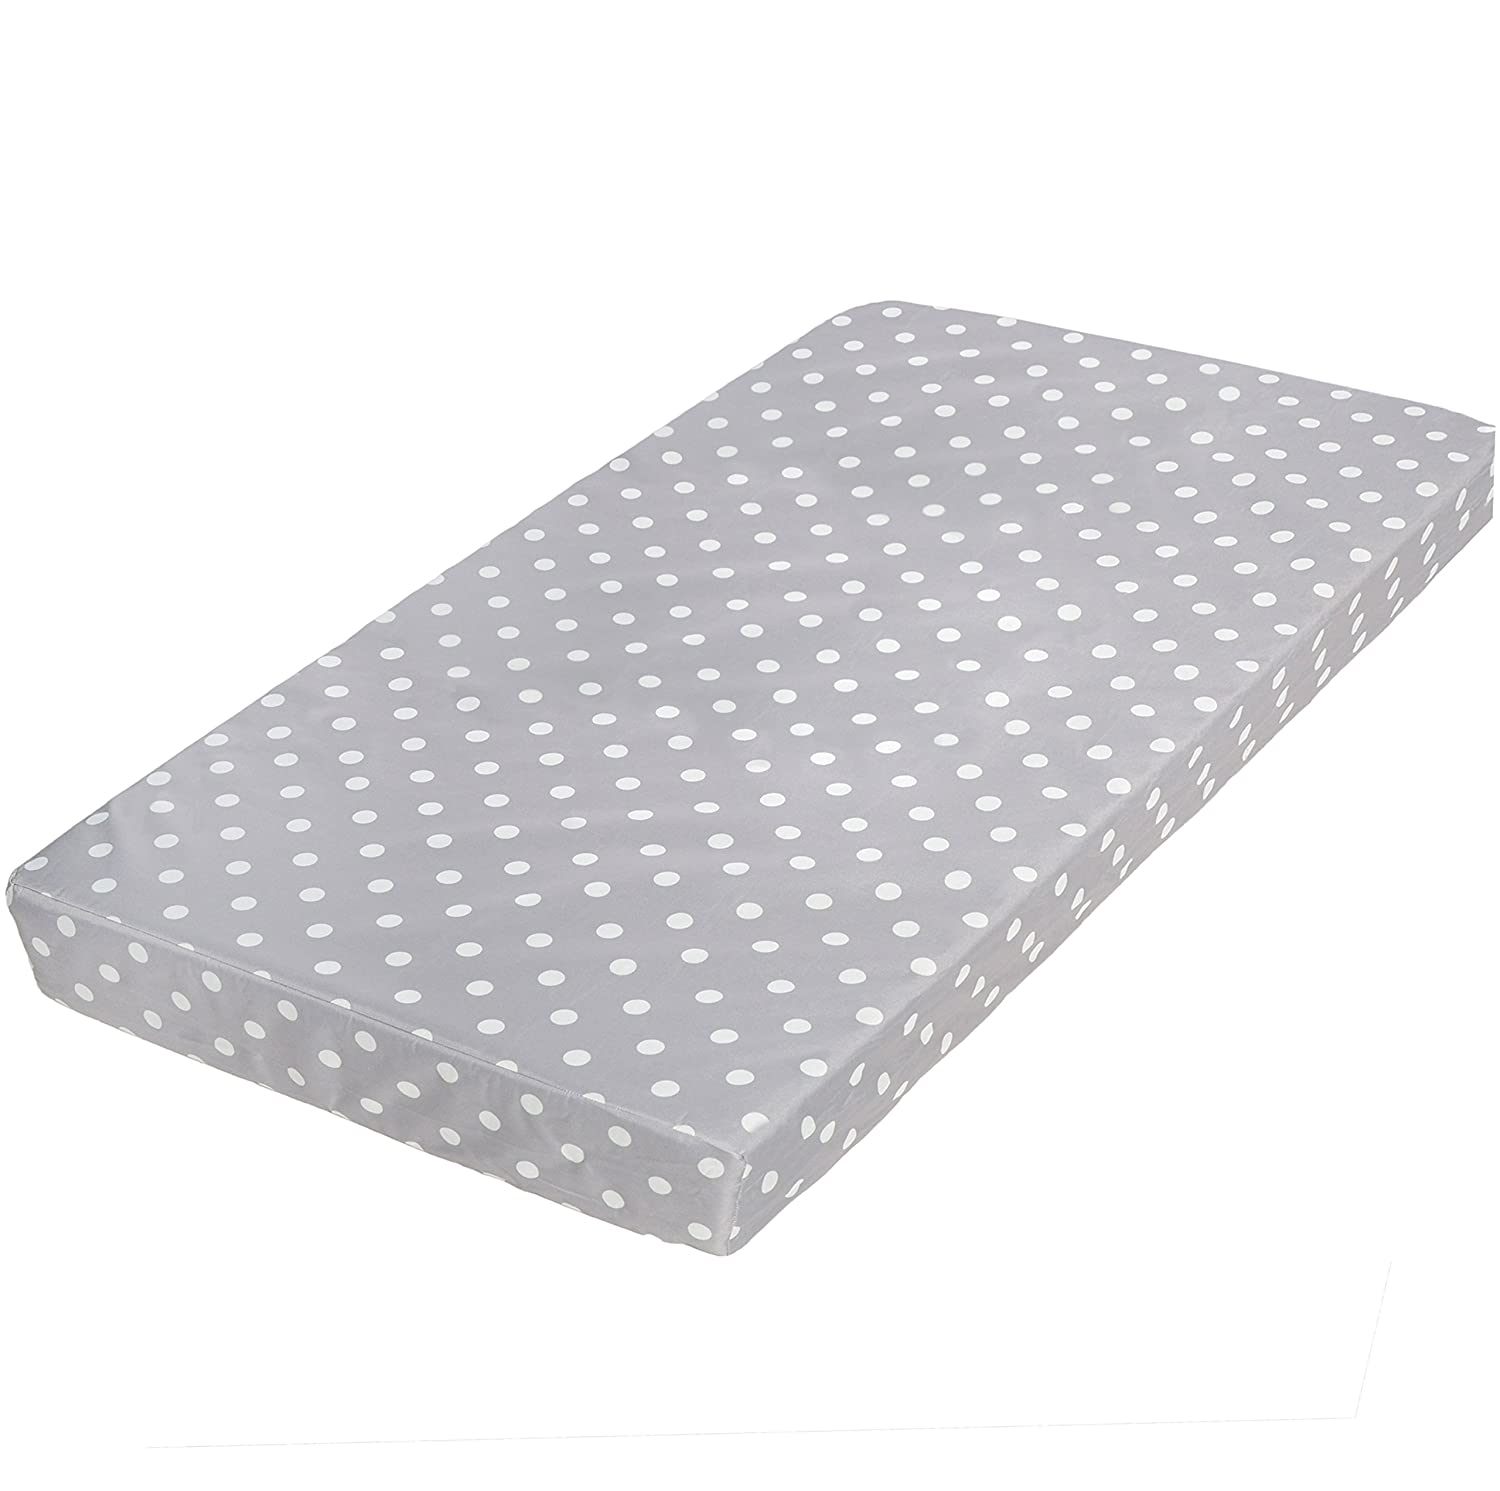 5 Best Baby Crib Mattress – Reviews And Buying Guide 2